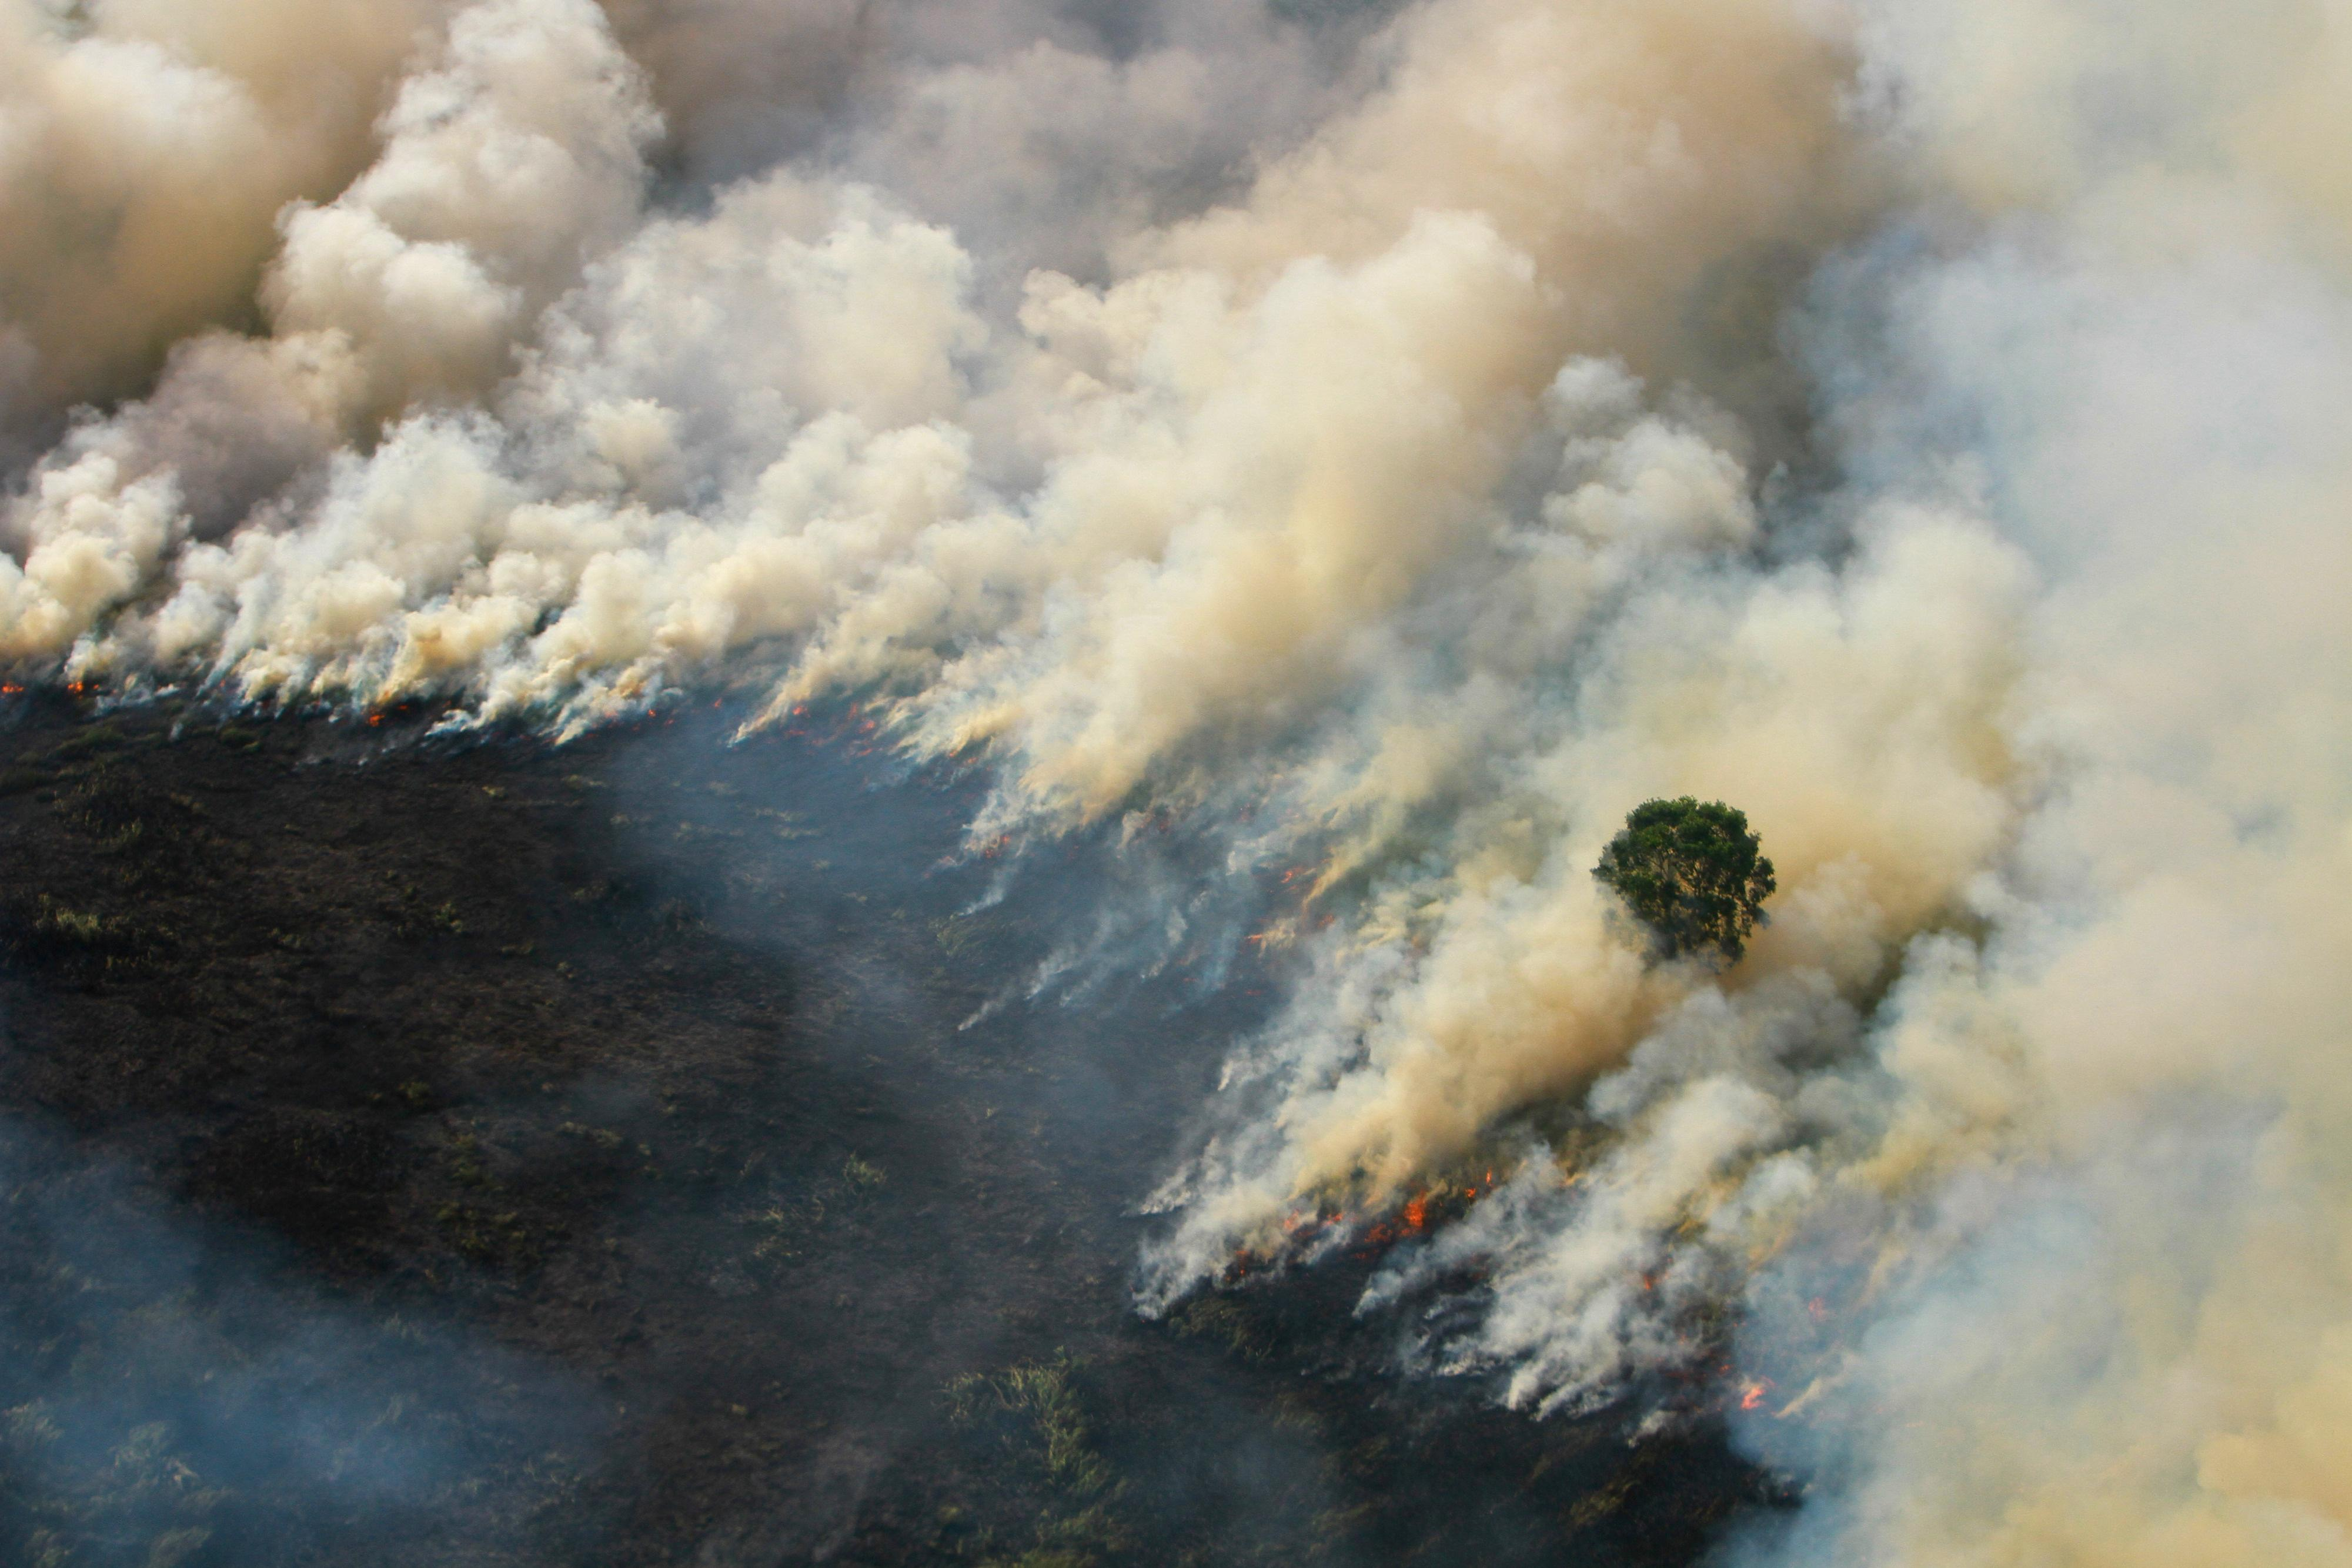 Malaysia complains of smog from Indonesia as forest fires flare